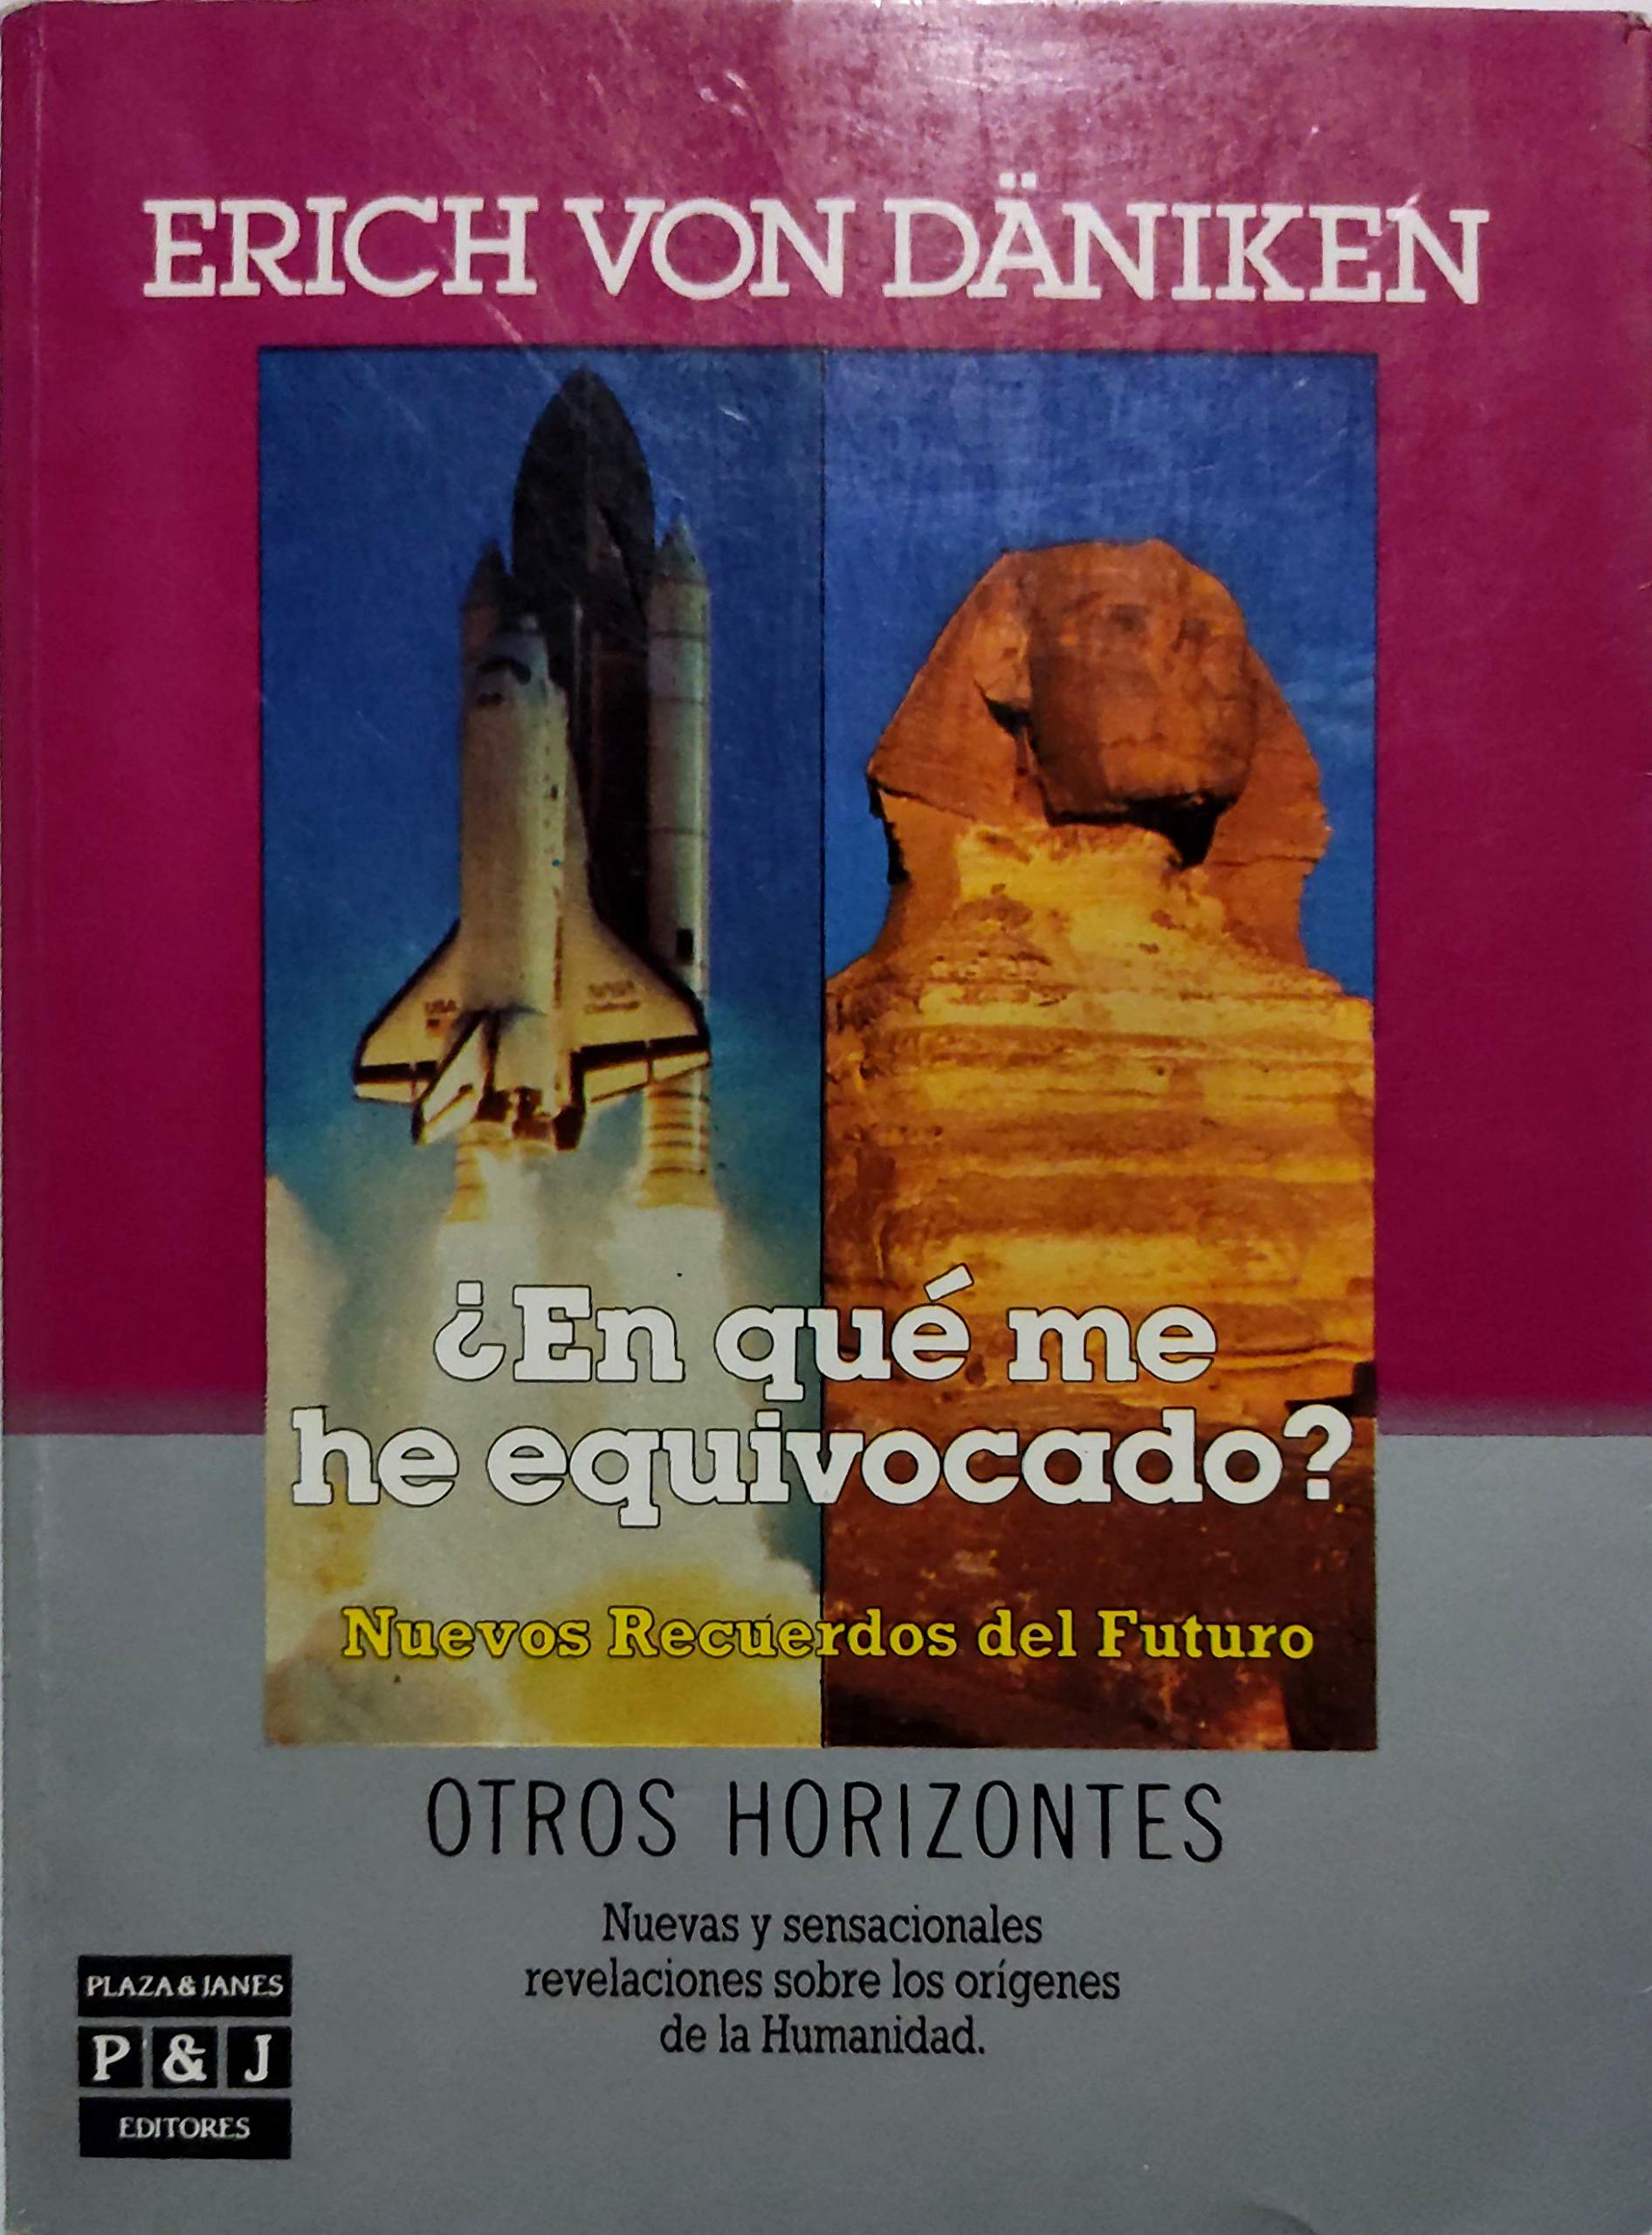 En Que Me He Equivocado Nuevos Recuerdos Del Futuro How Have I Gone Wrong New Memories For The Future Spanish Edition Von Daniken Erich 9788401390234 Books